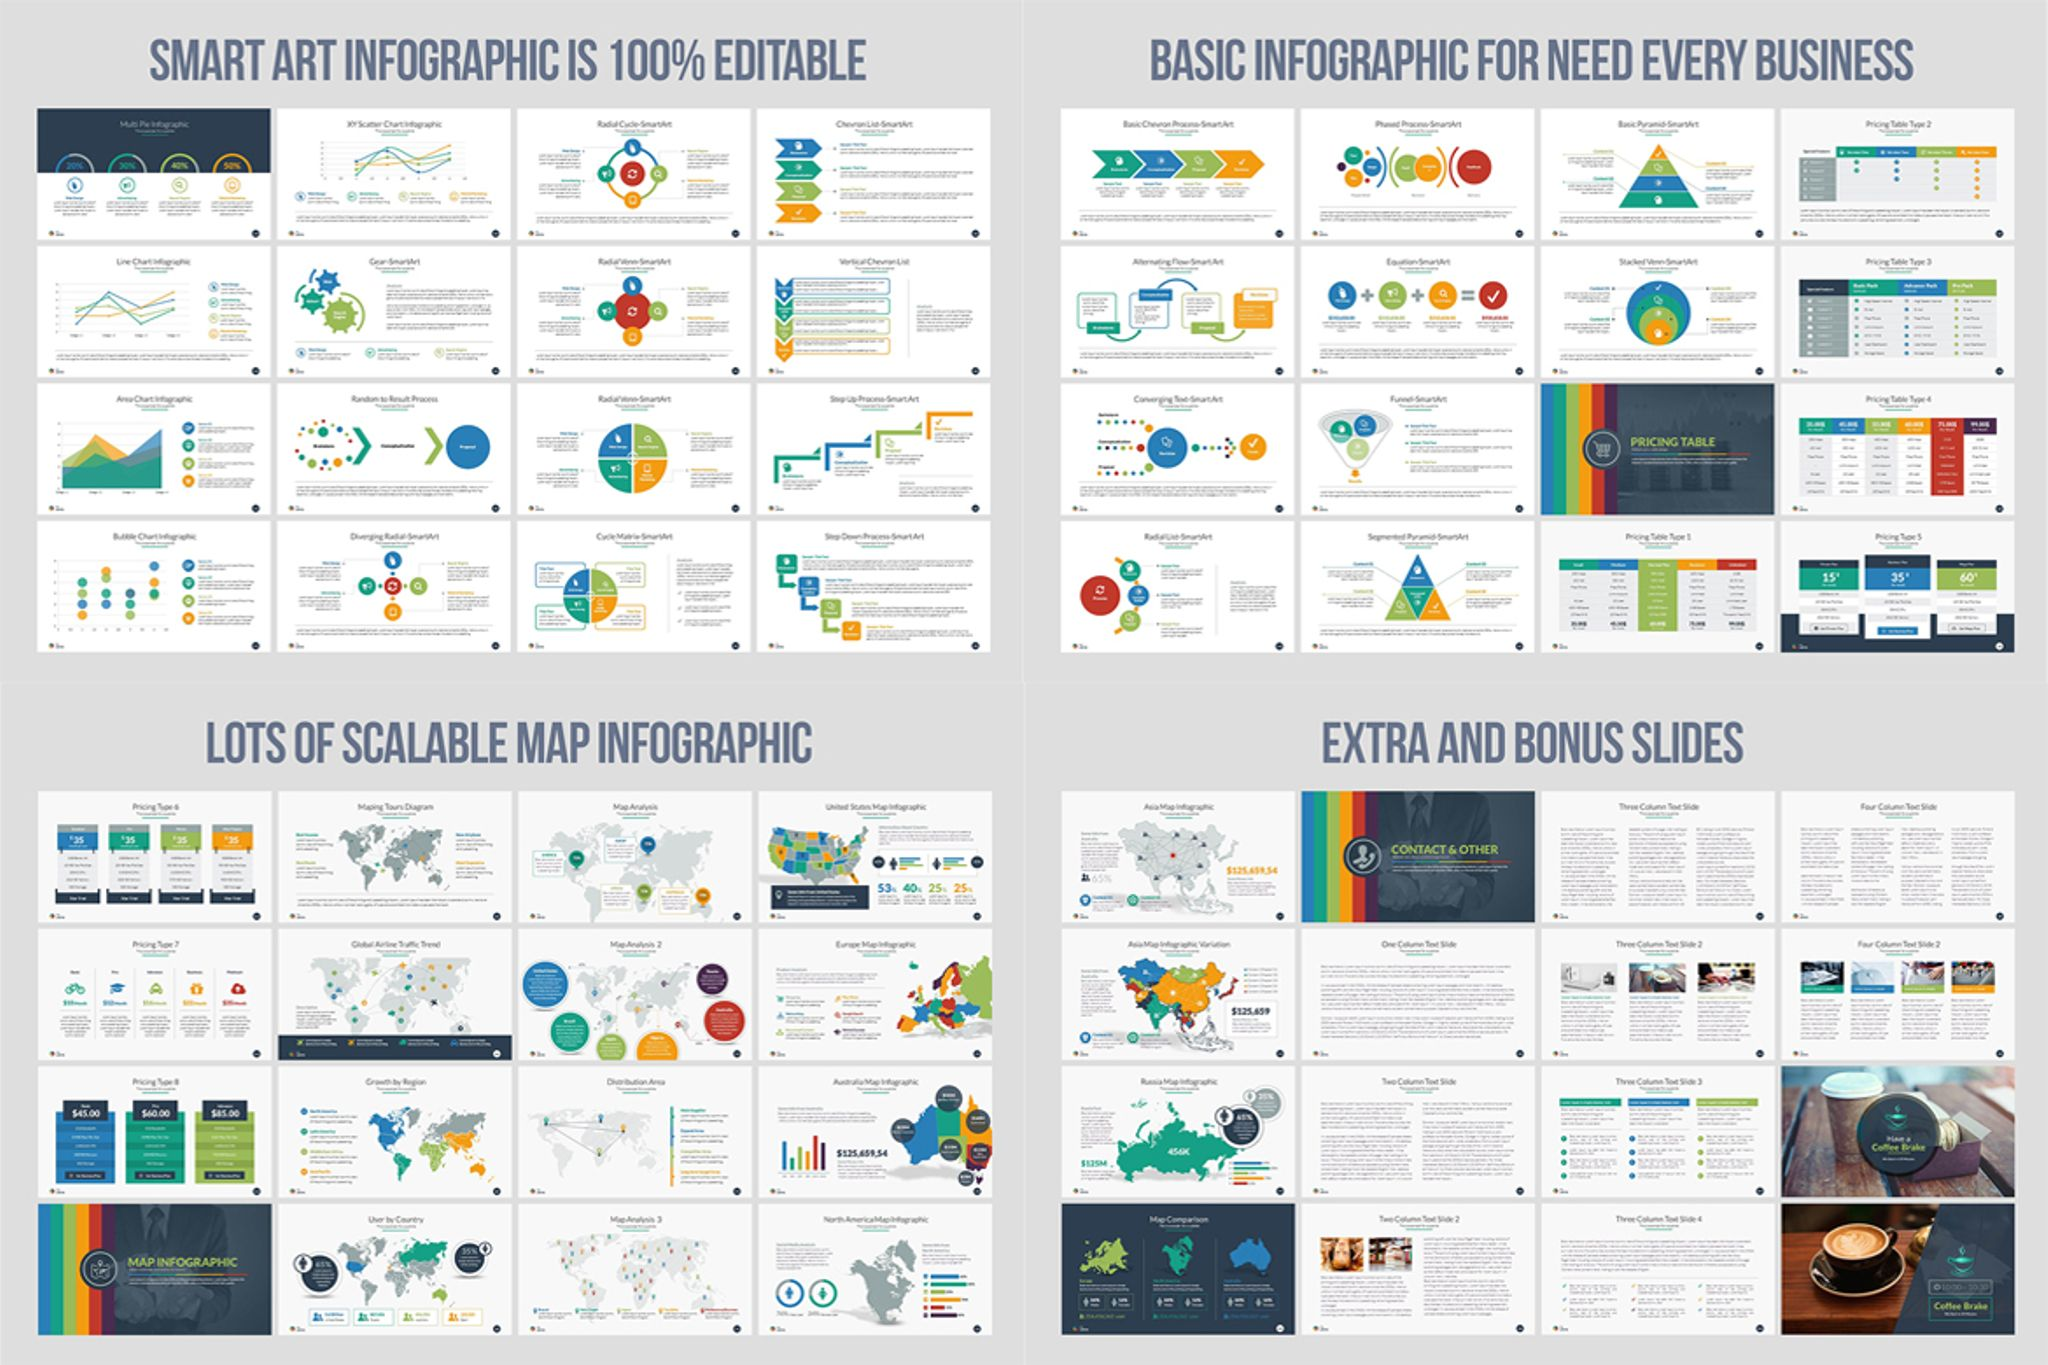 Business Infographic Presentation - PowerPoint Template #66111